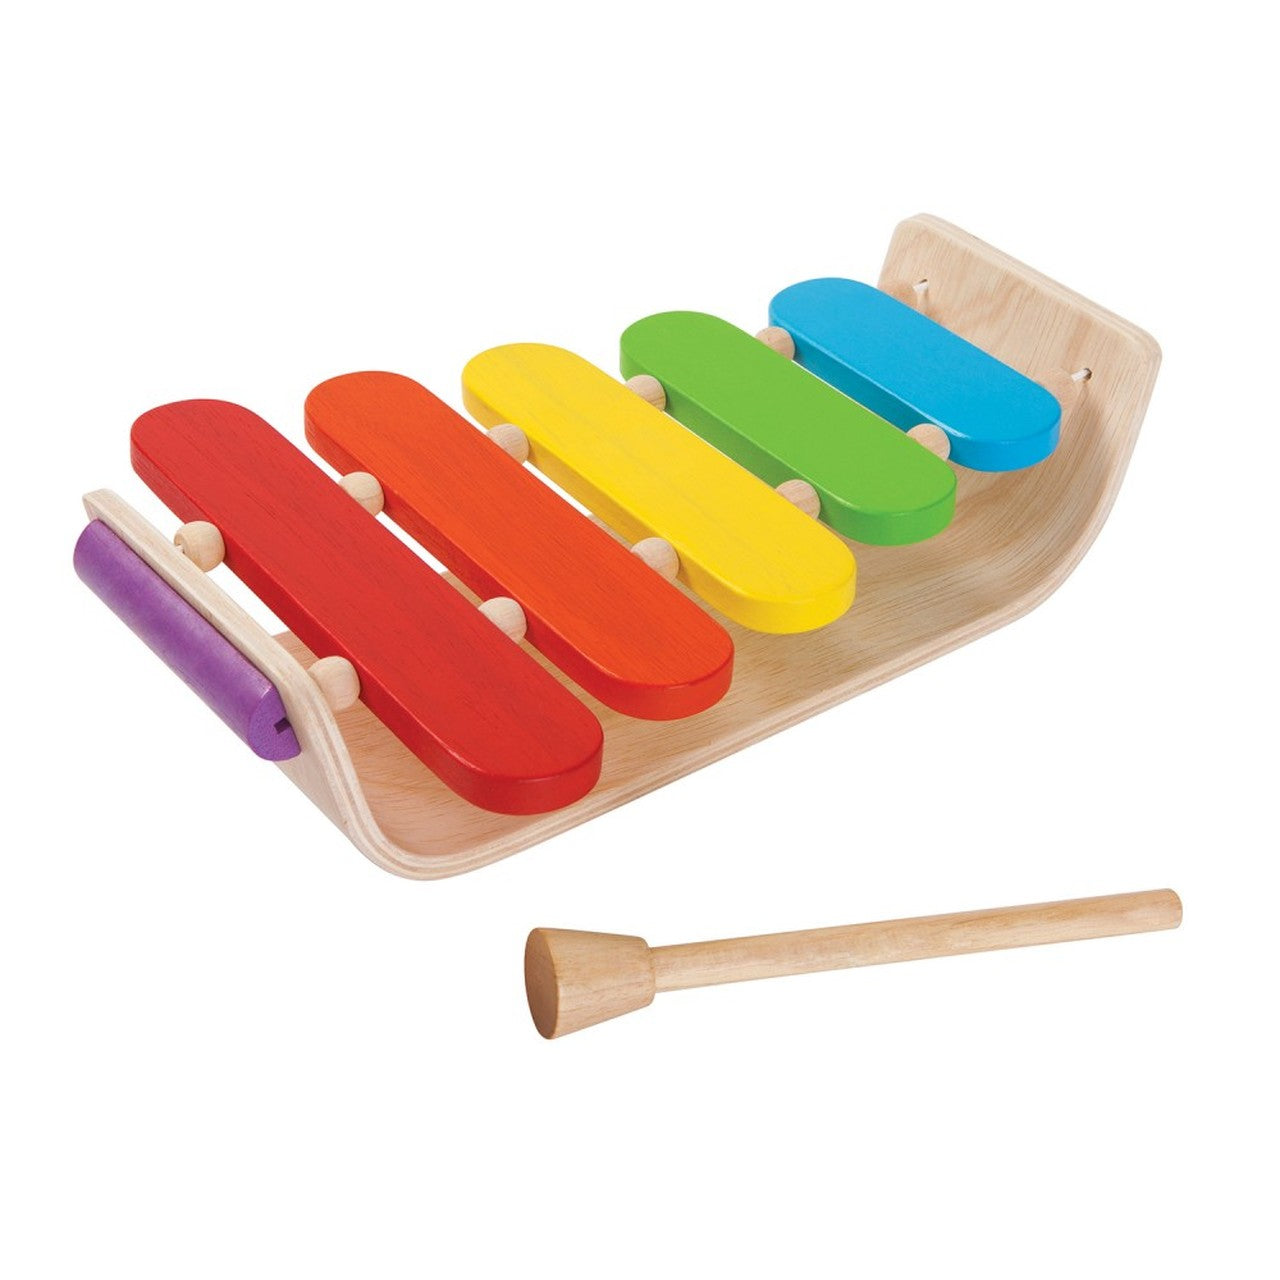 A wooden xylophone with multi-coloured keys on a white background.